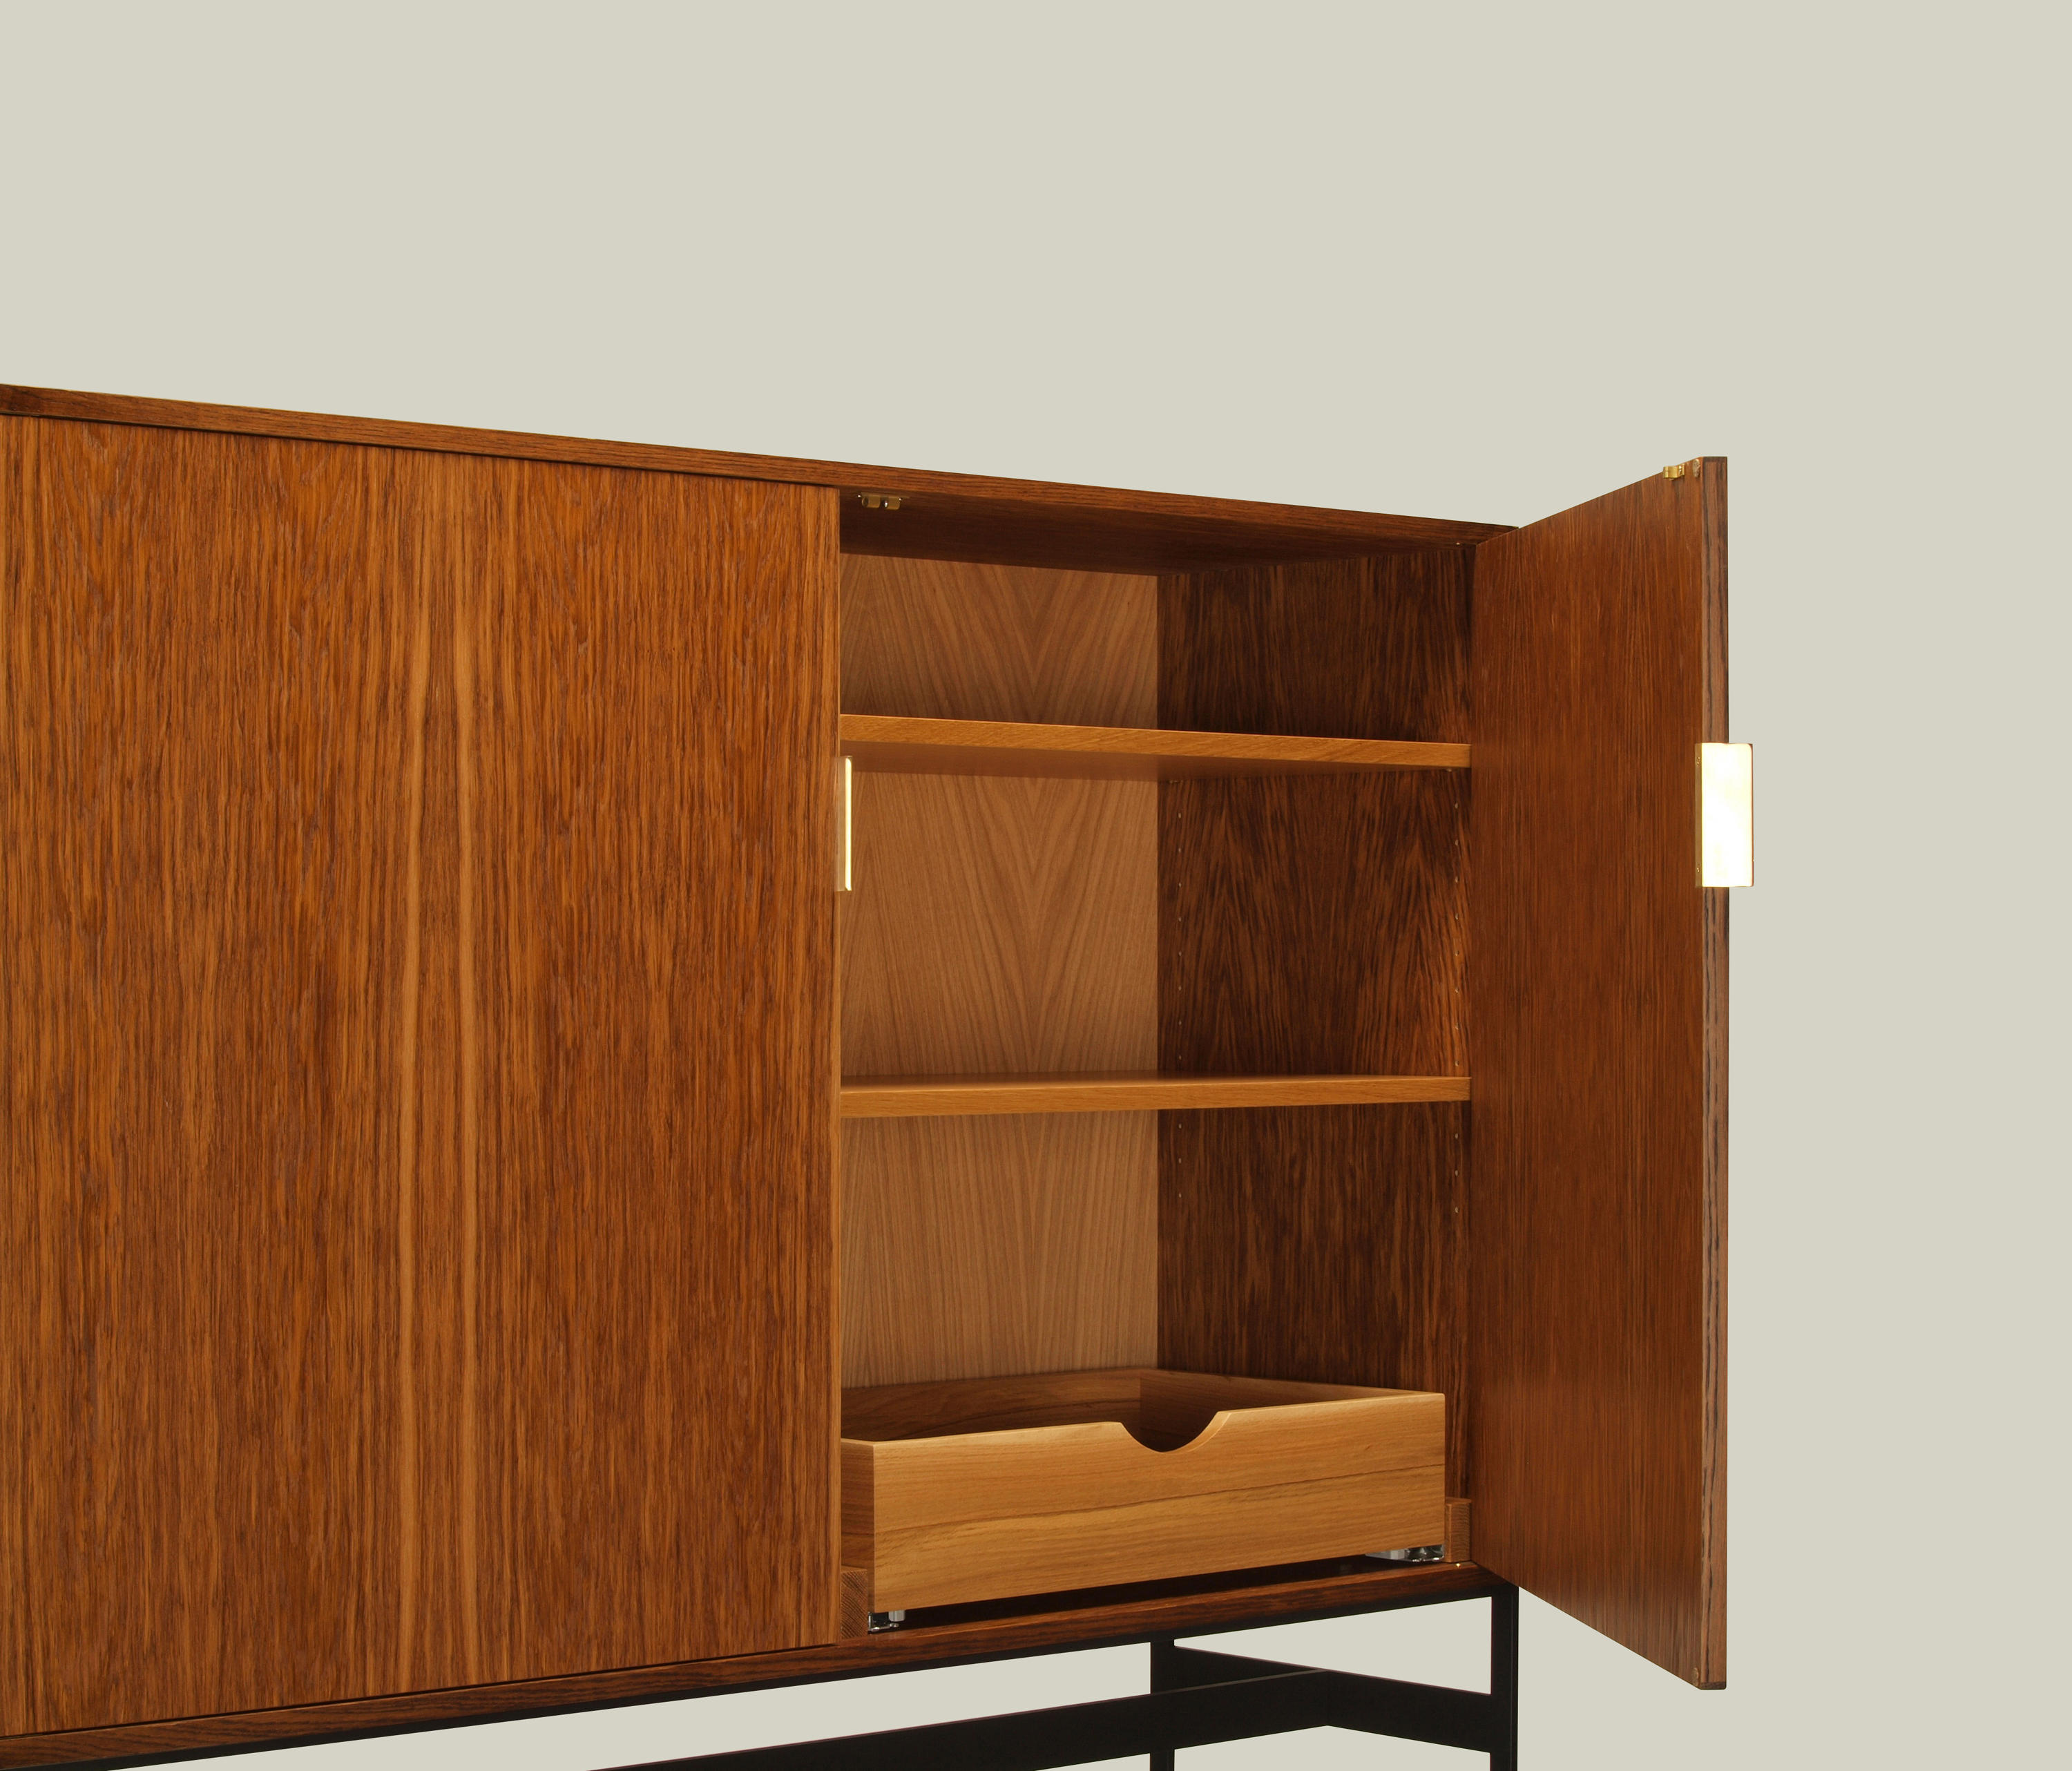 Piedmont Cabinet On Stand Cabinets From Skram Architonic